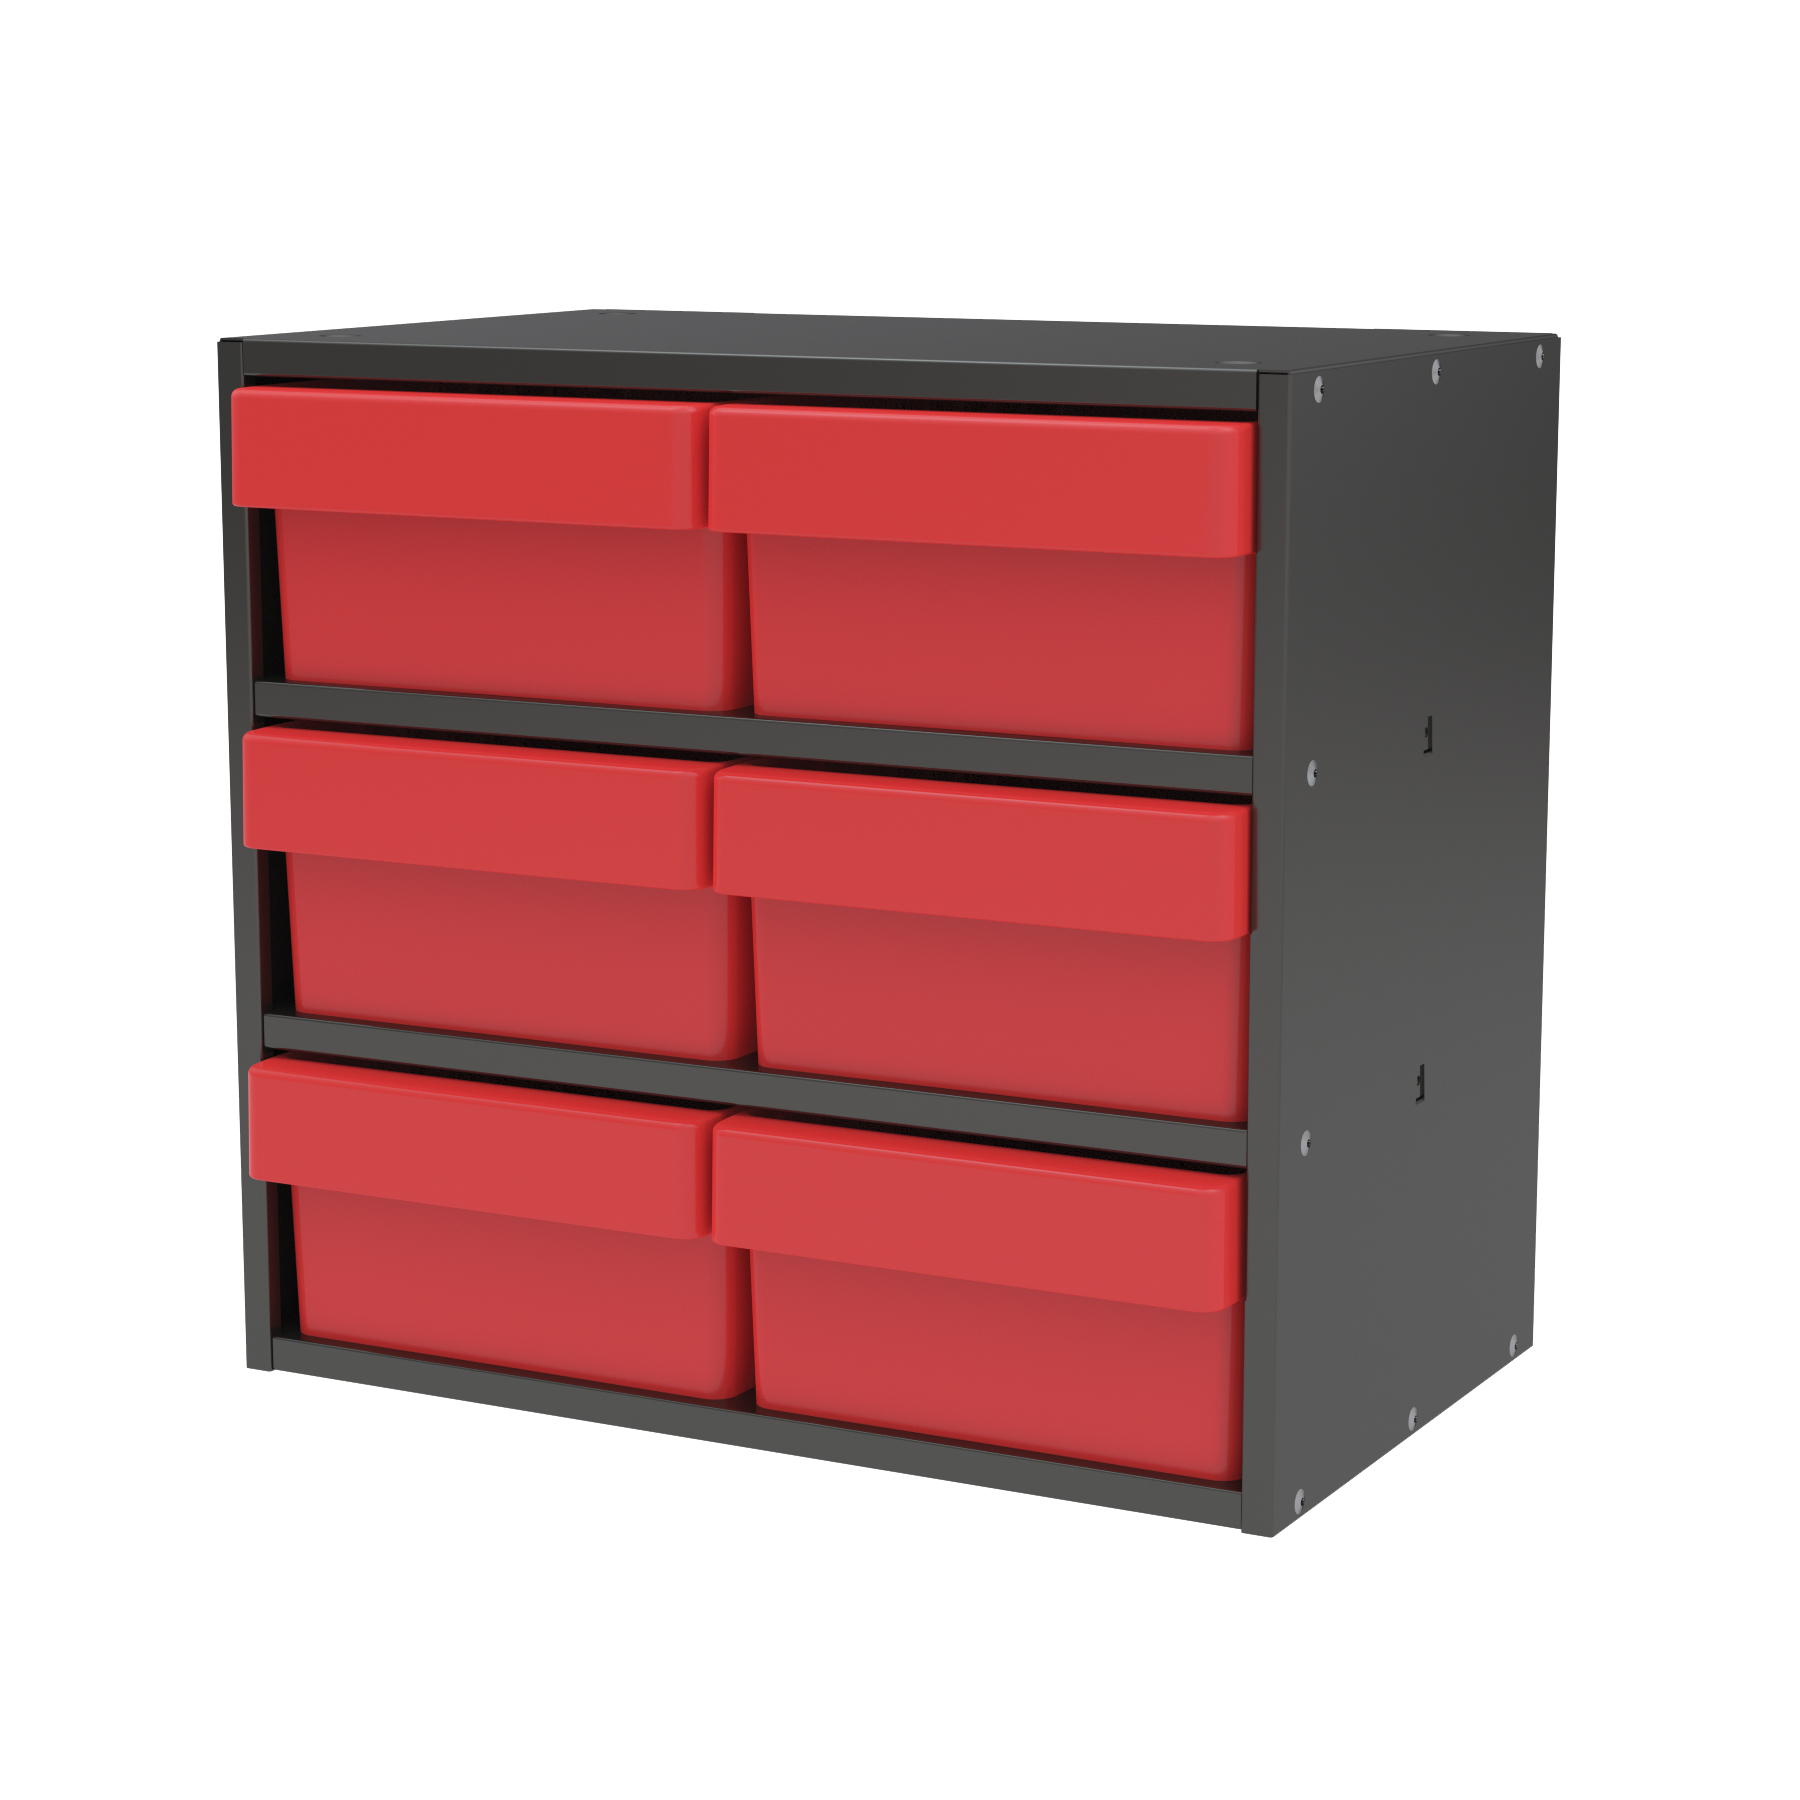 Item DISCONTINUED by Manufacturer.  Modular Cabinet, 18x11x16, 6 Drawers, Gray/Red (AD1811C82RED).  This item sold in carton quantities of 1.